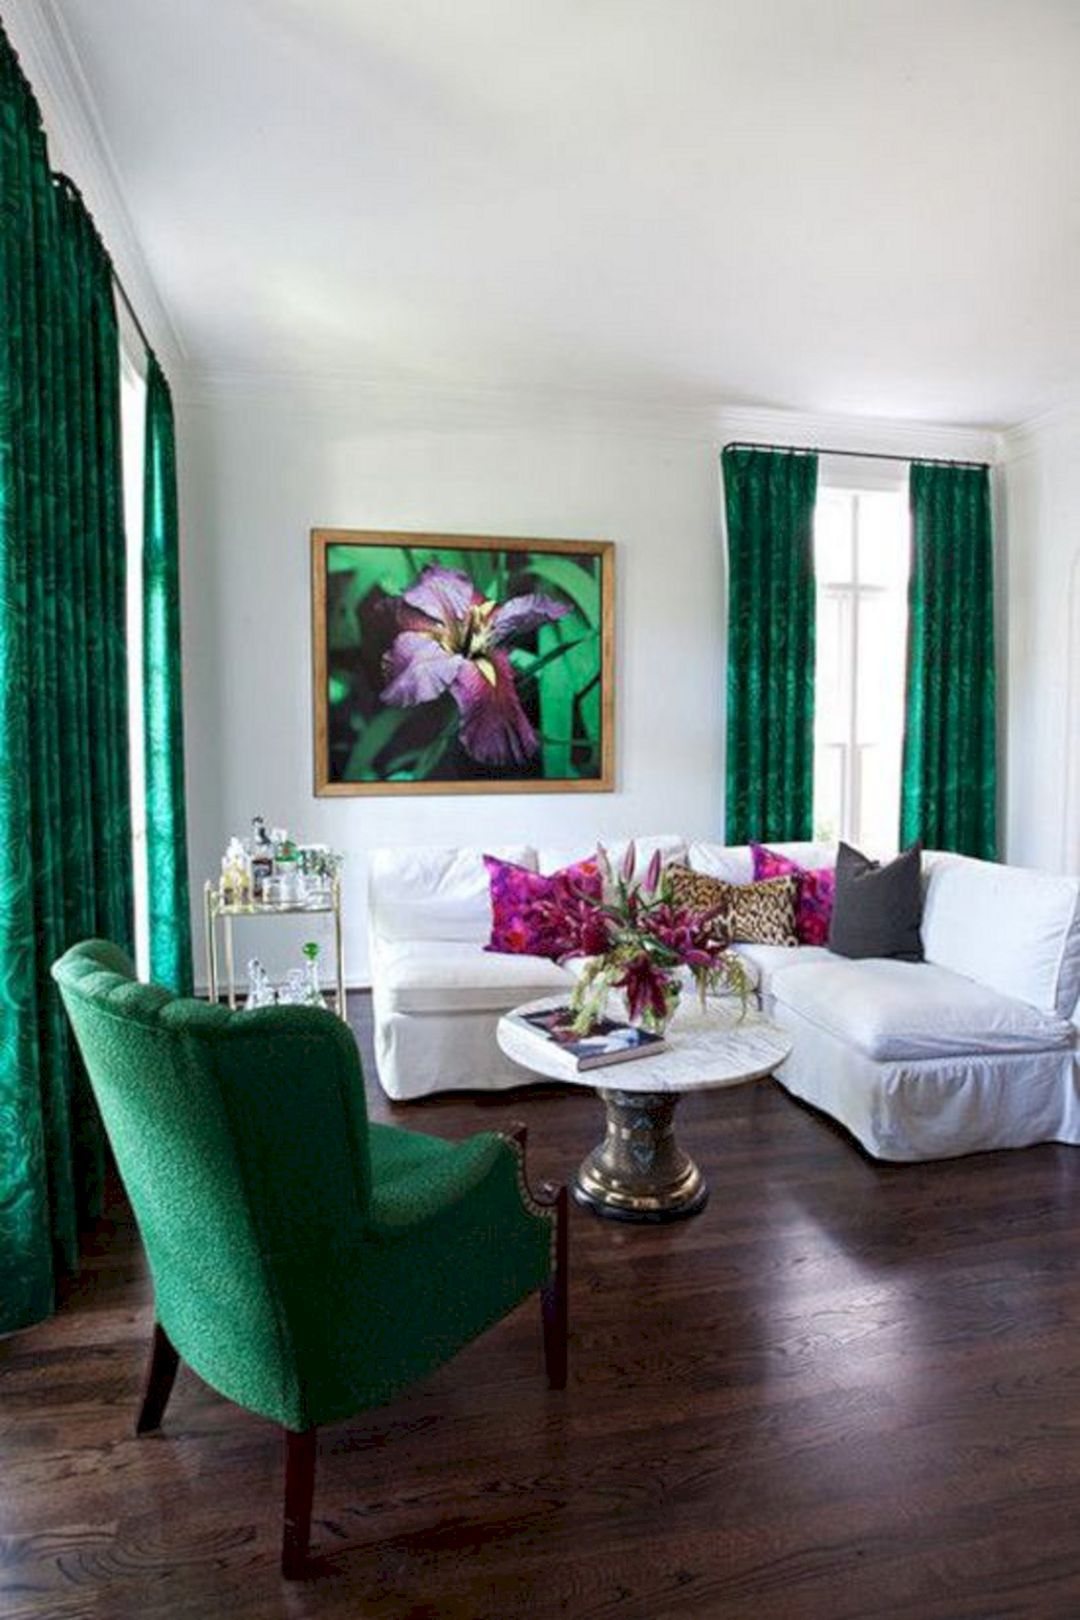 Sublime 49 fabulous emerald interior accents ideas for your home https freshouz